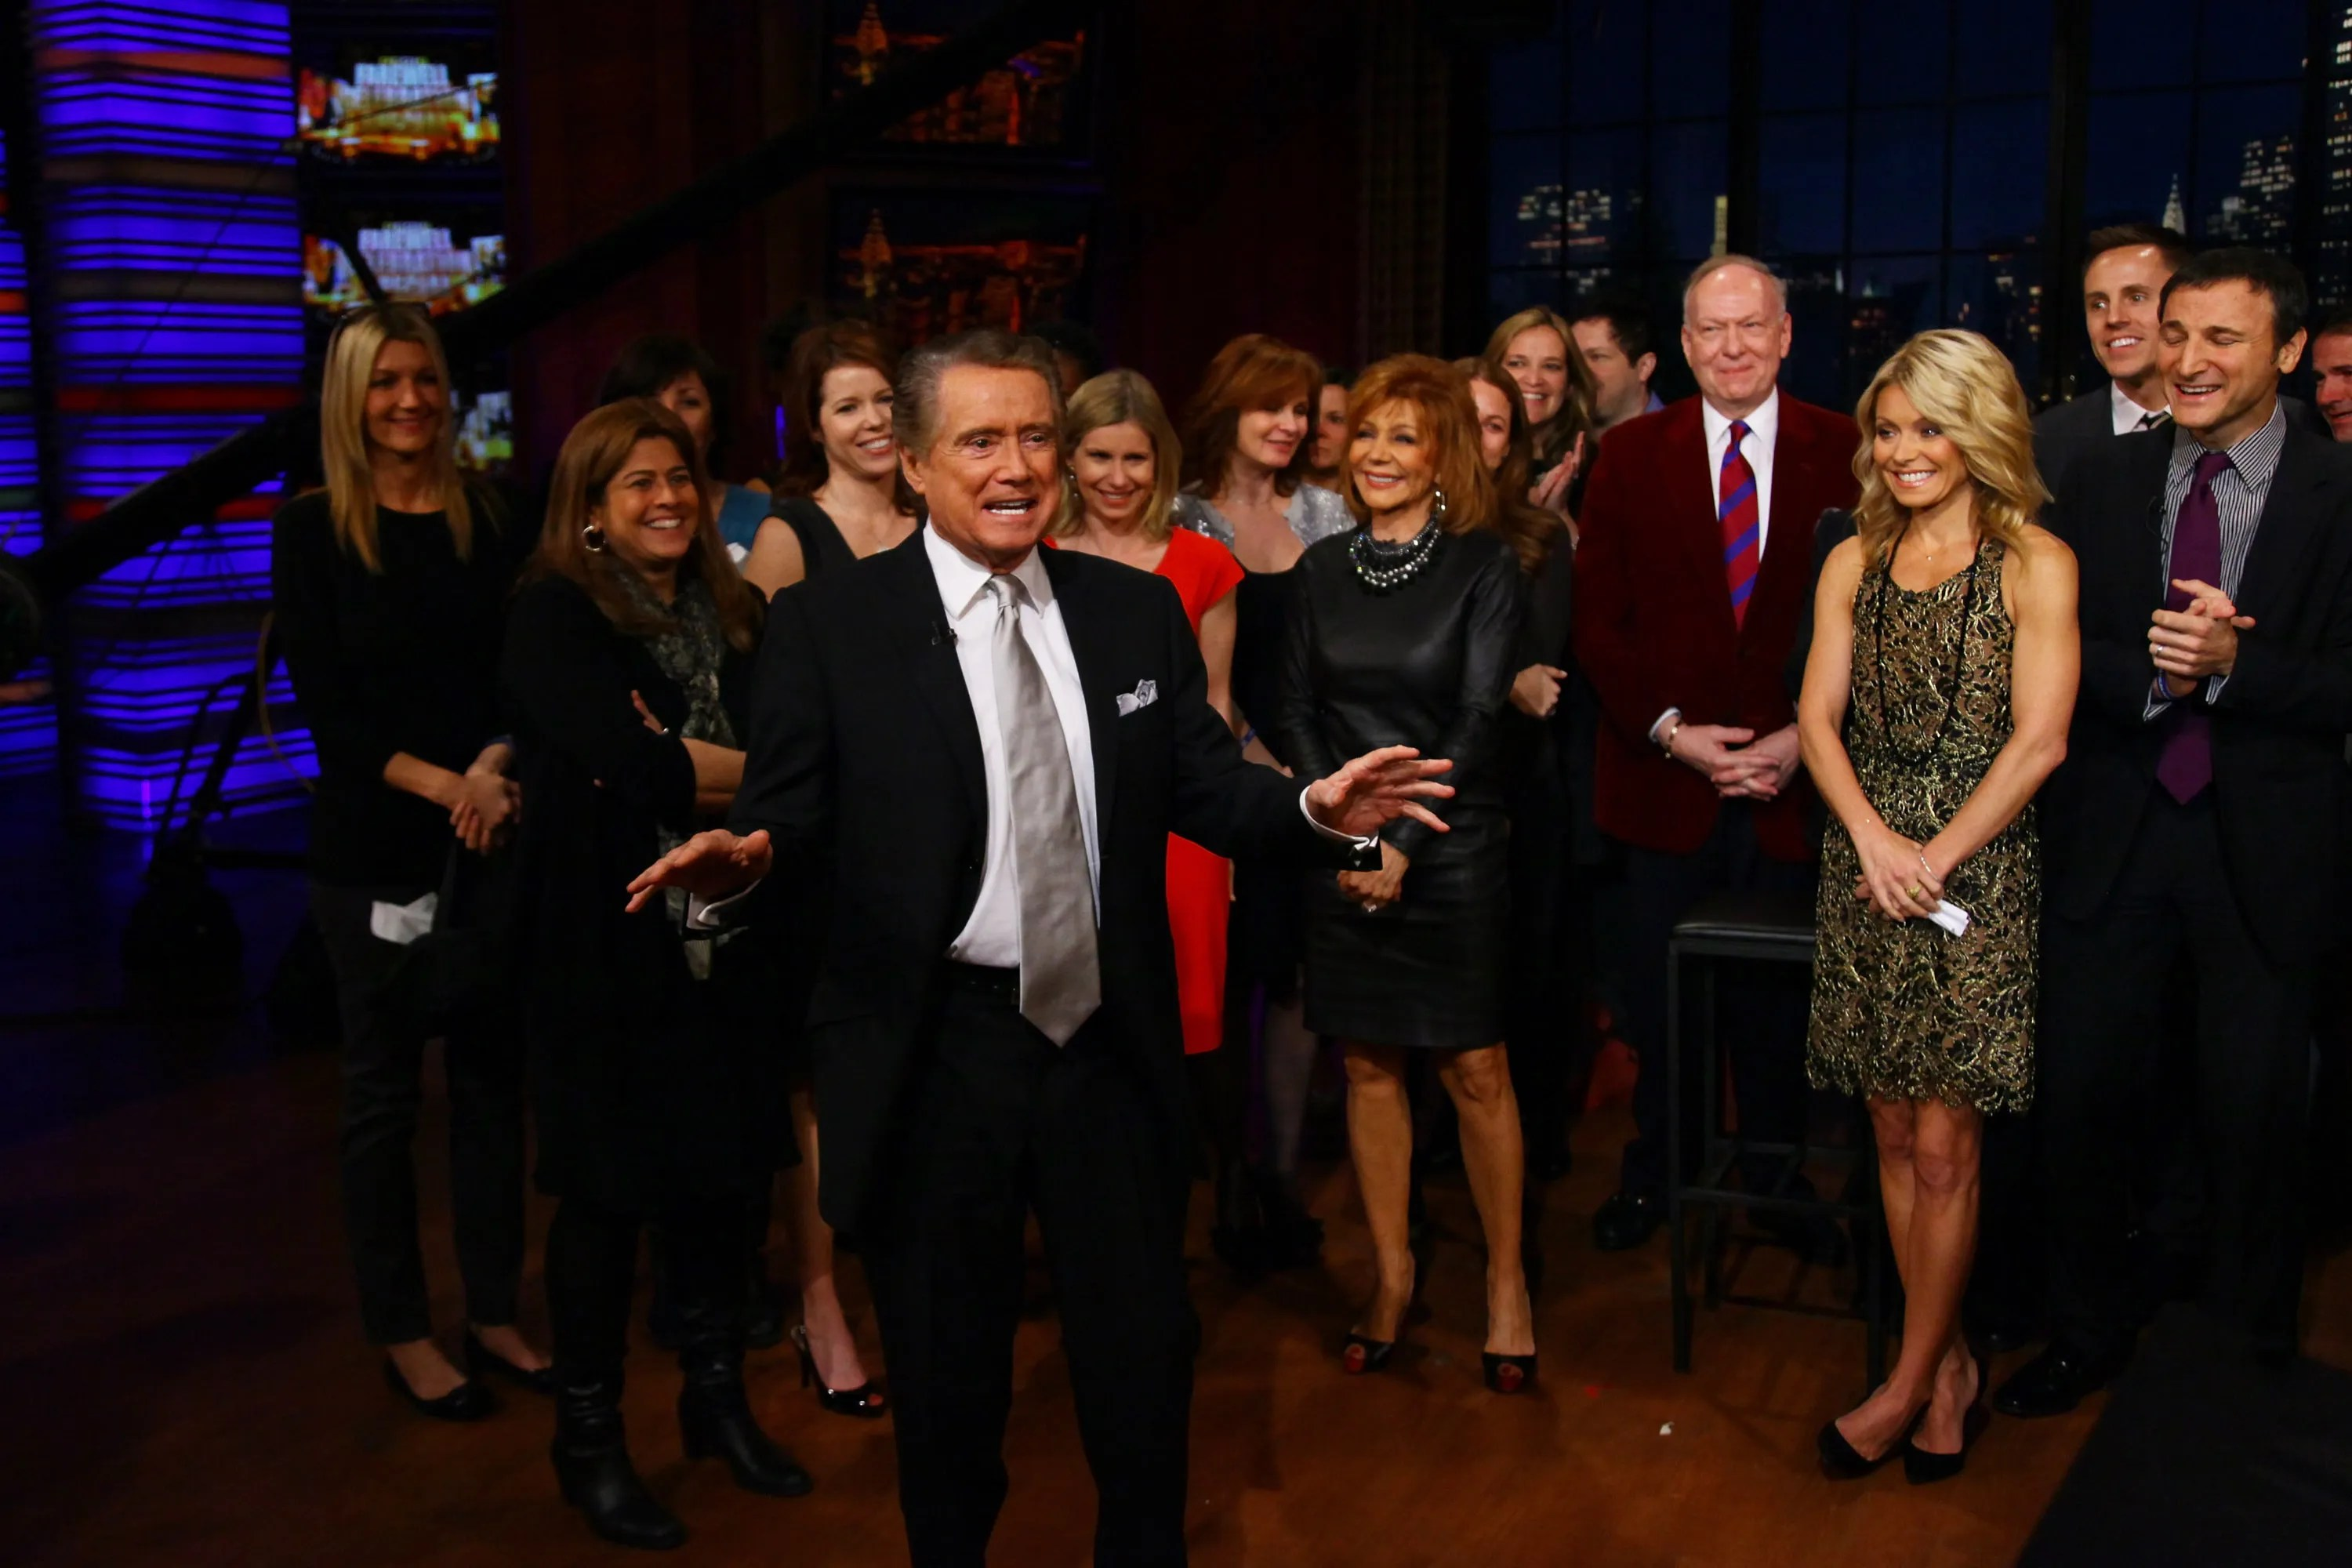 """Regis Philbin, center, and Kelly Ripa, right, on the set during Philbin's final show of """"Live! With Regis and Kelly"""" on Nov. 18, 2011, in New York."""